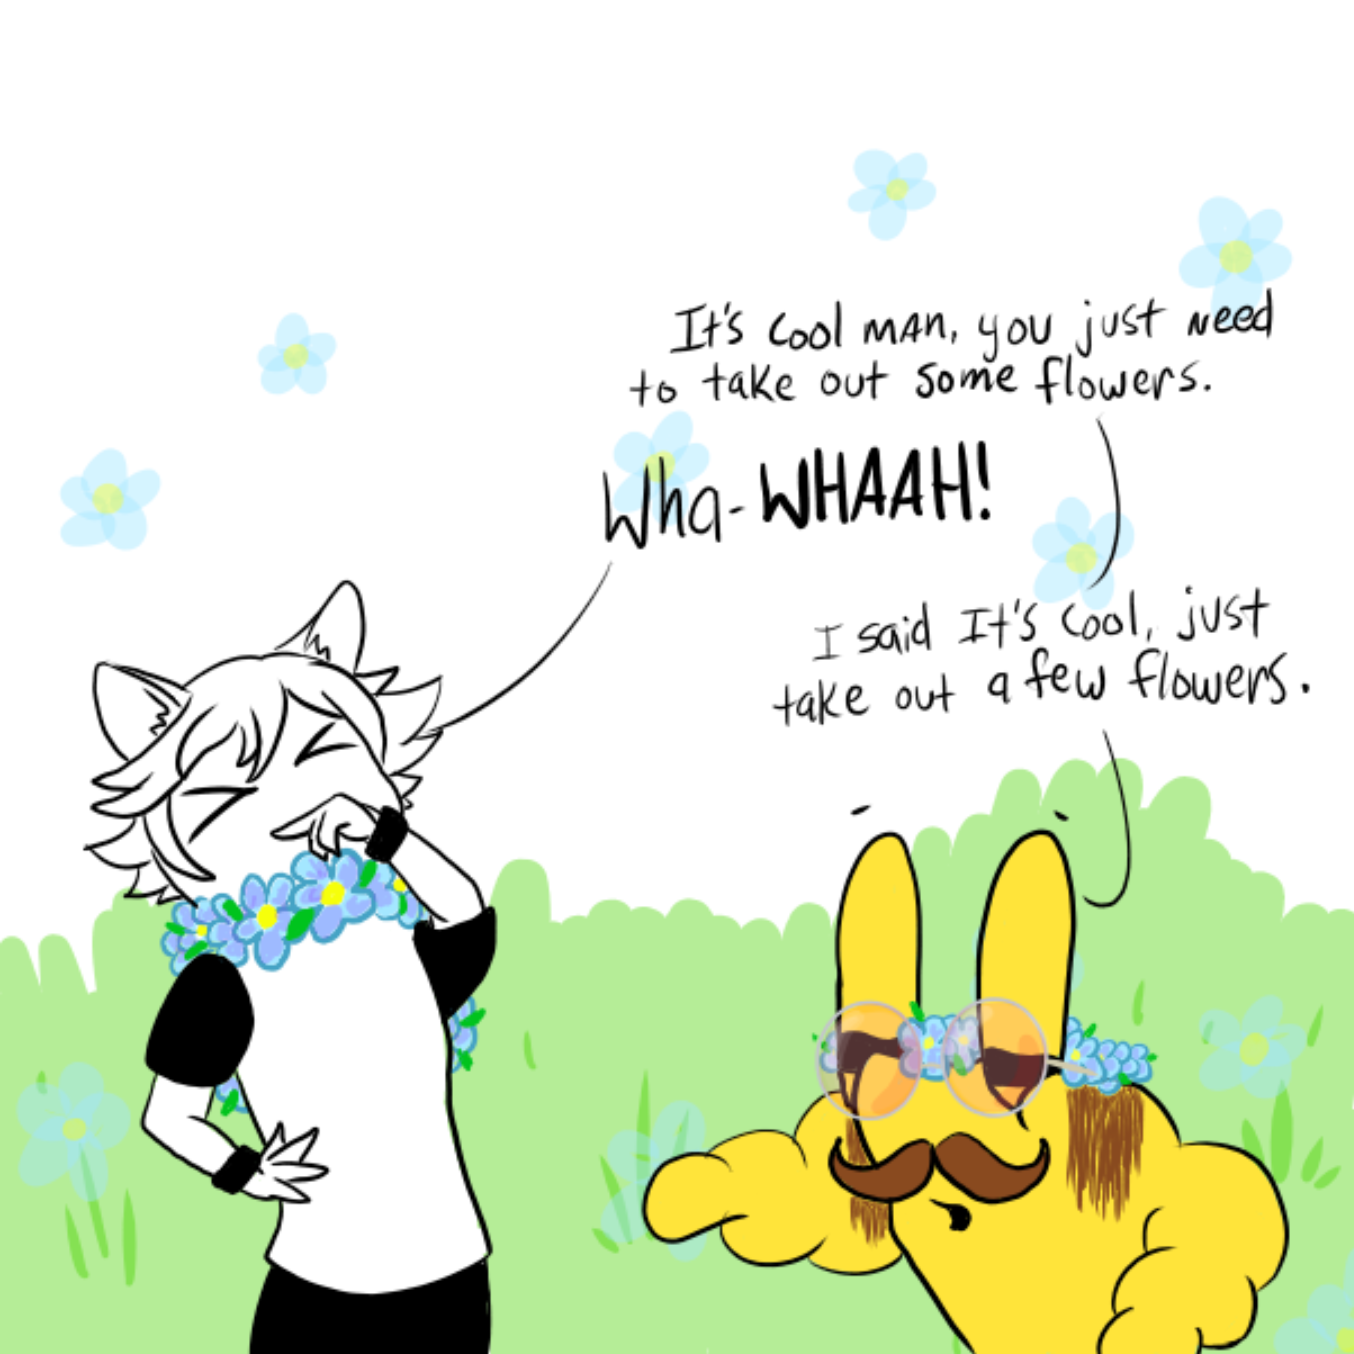 Drawing in flower crowns~ by WizardCroissant